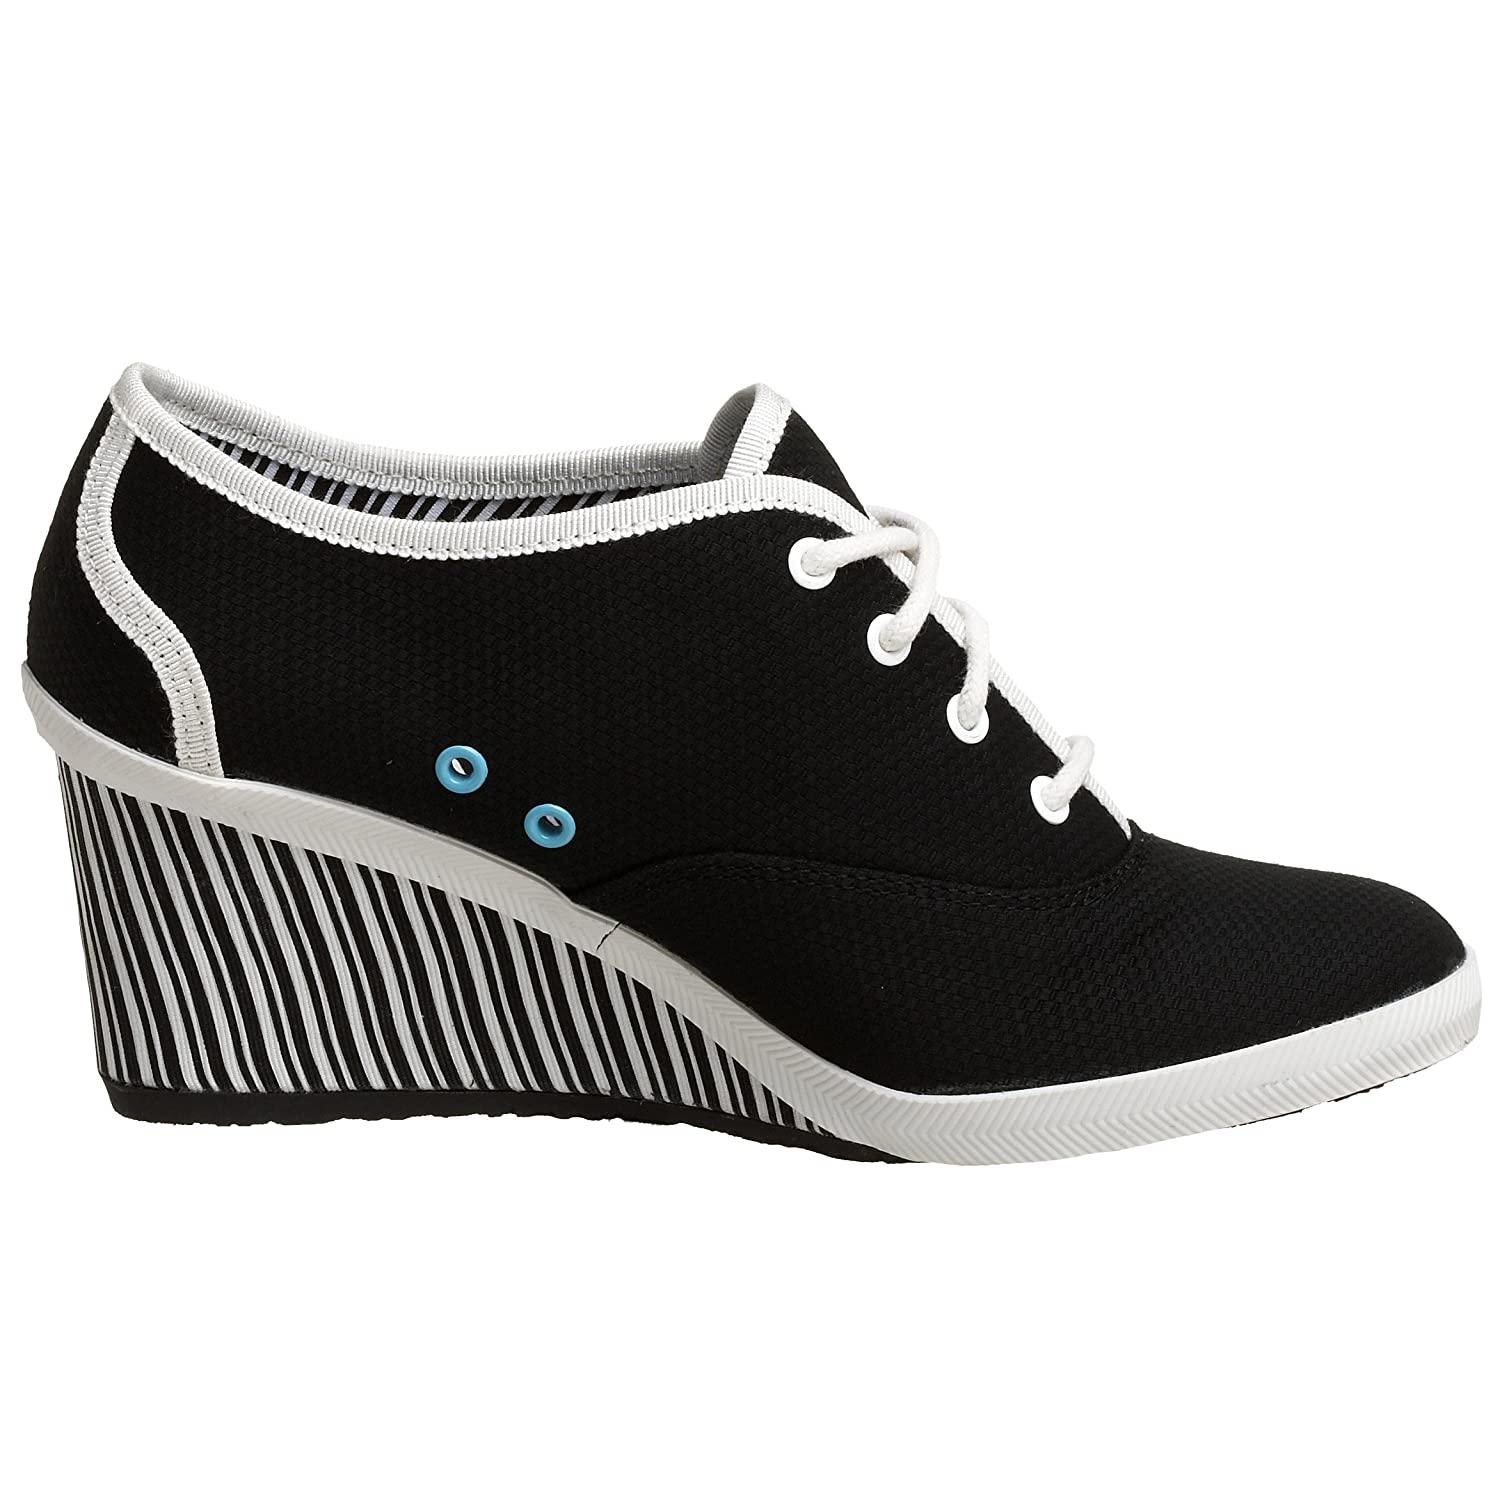 Keds Women's Do-Si-Do Wedge - Free Overnight Shipping & Return Shipping: Endless.com from endless.com